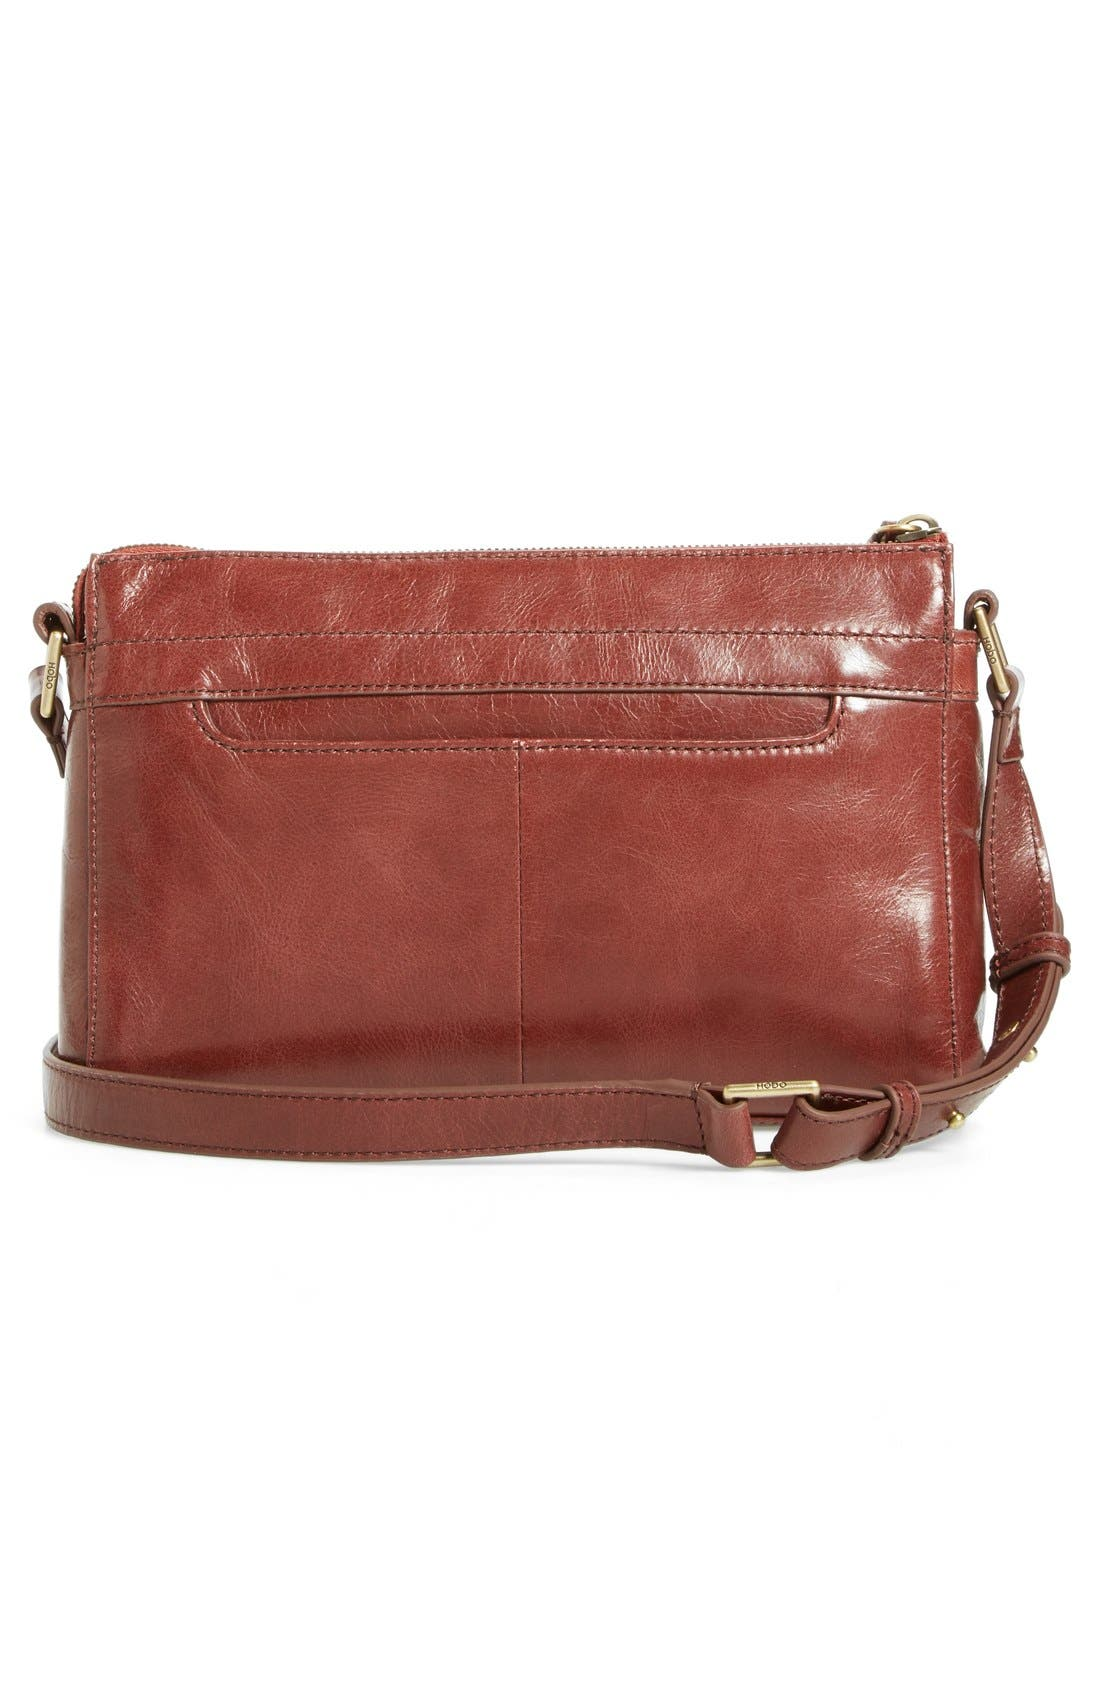 Tobey Leather Crossbody Bag,                             Alternate thumbnail 32, color,